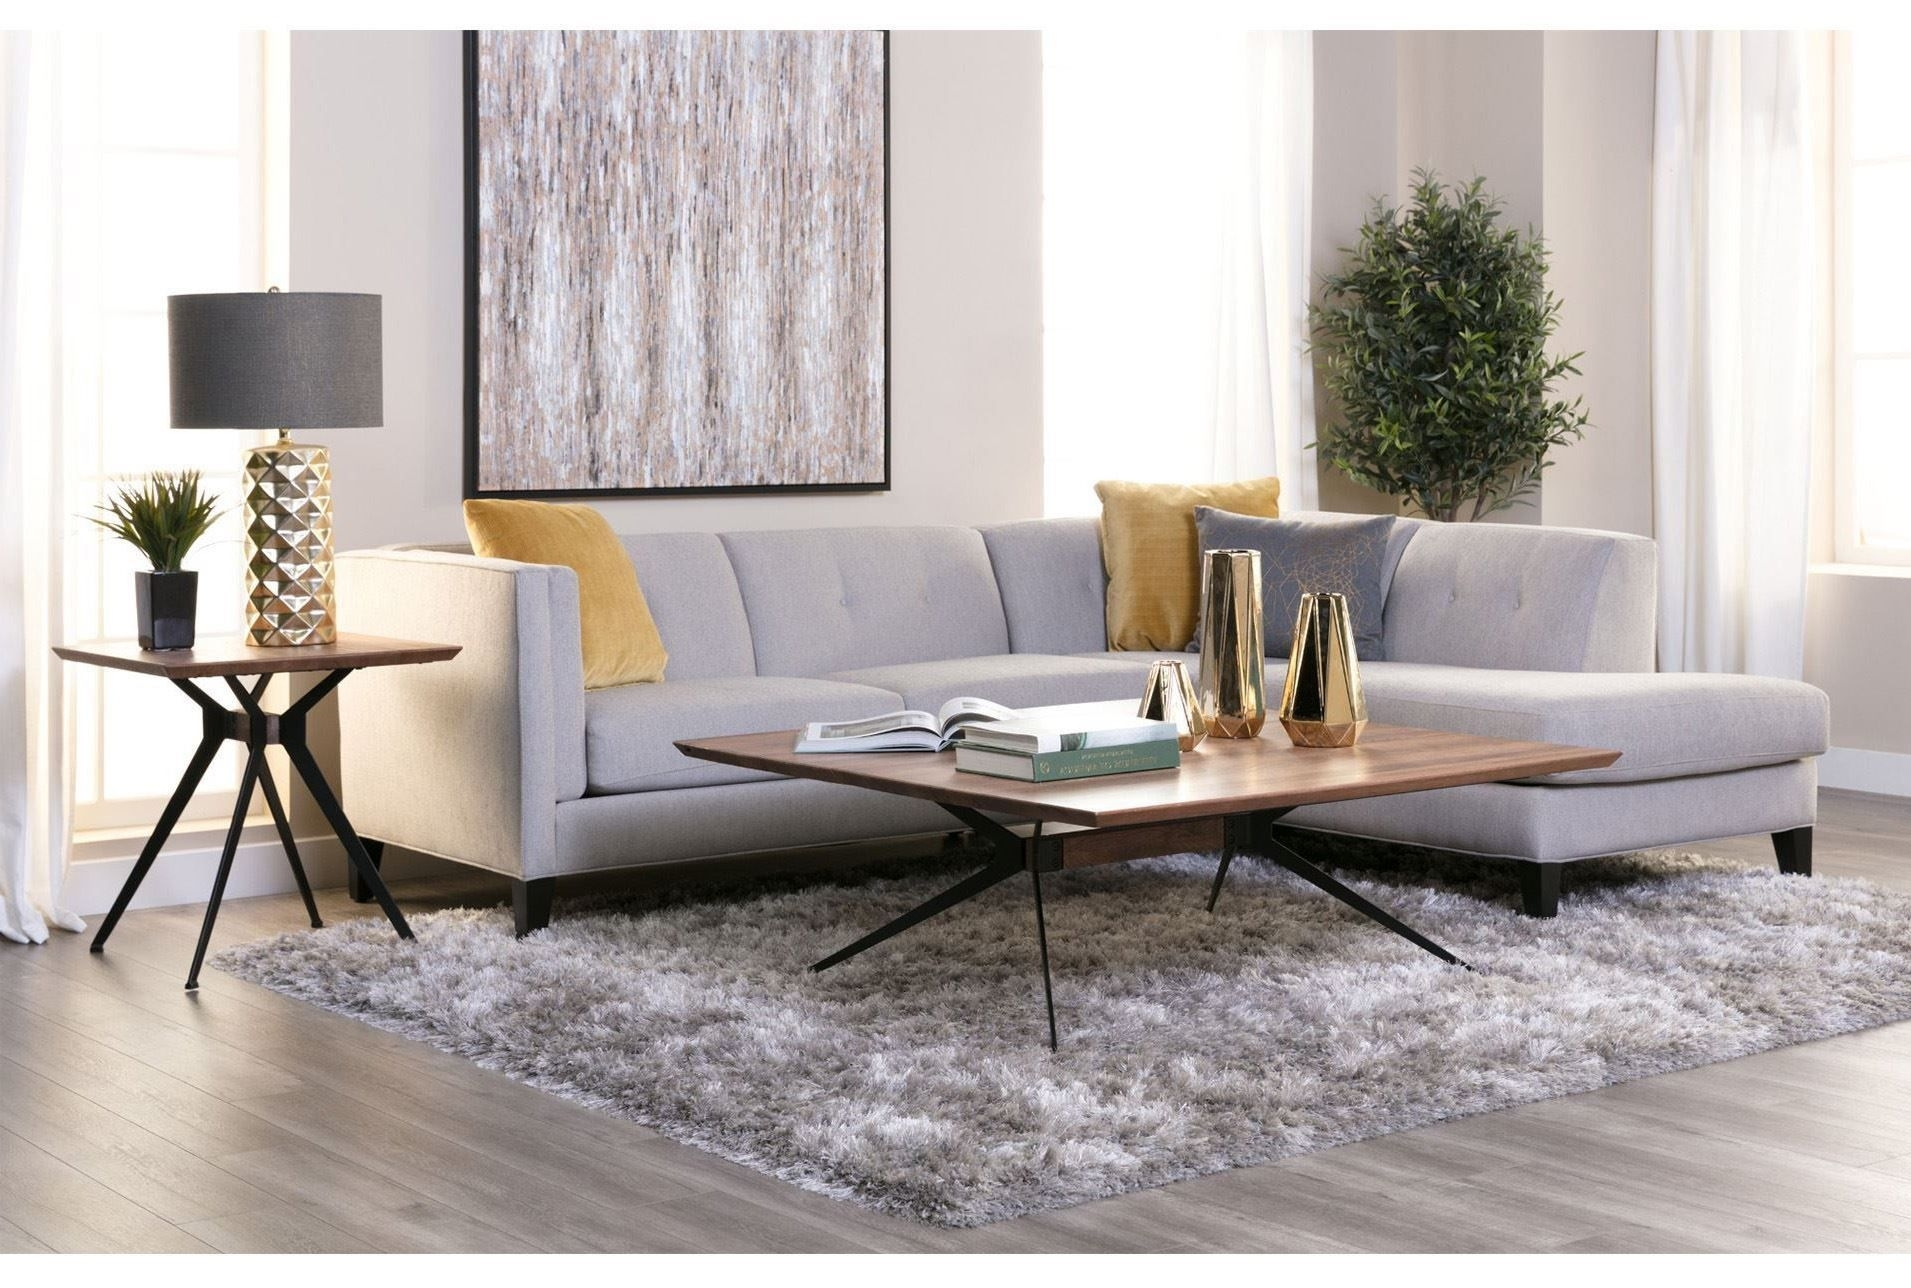 Avery 2 Piece Sectional W/raf Armless Chaise, Grey, Sofas | Mid for Aquarius Light Grey 2 Piece Sectionals With Laf Chaise (Image 10 of 30)